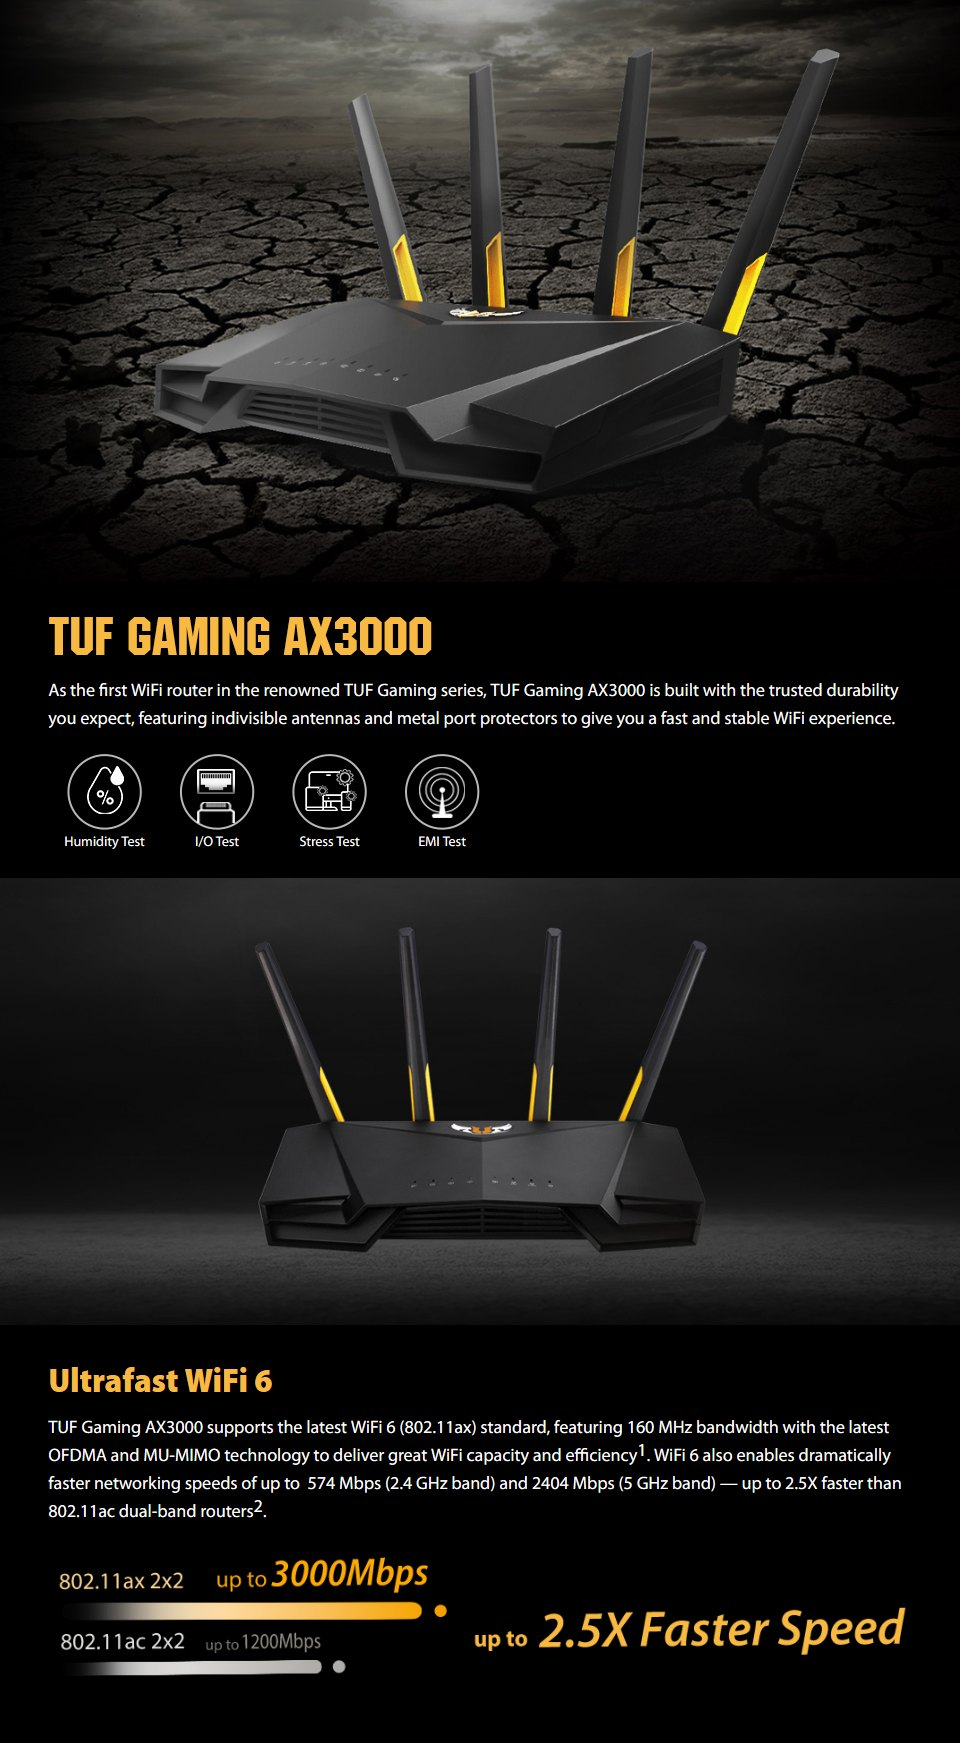 ASUS TUF AX3000 Dual Band Wi-Fi 6 Gaming Router features